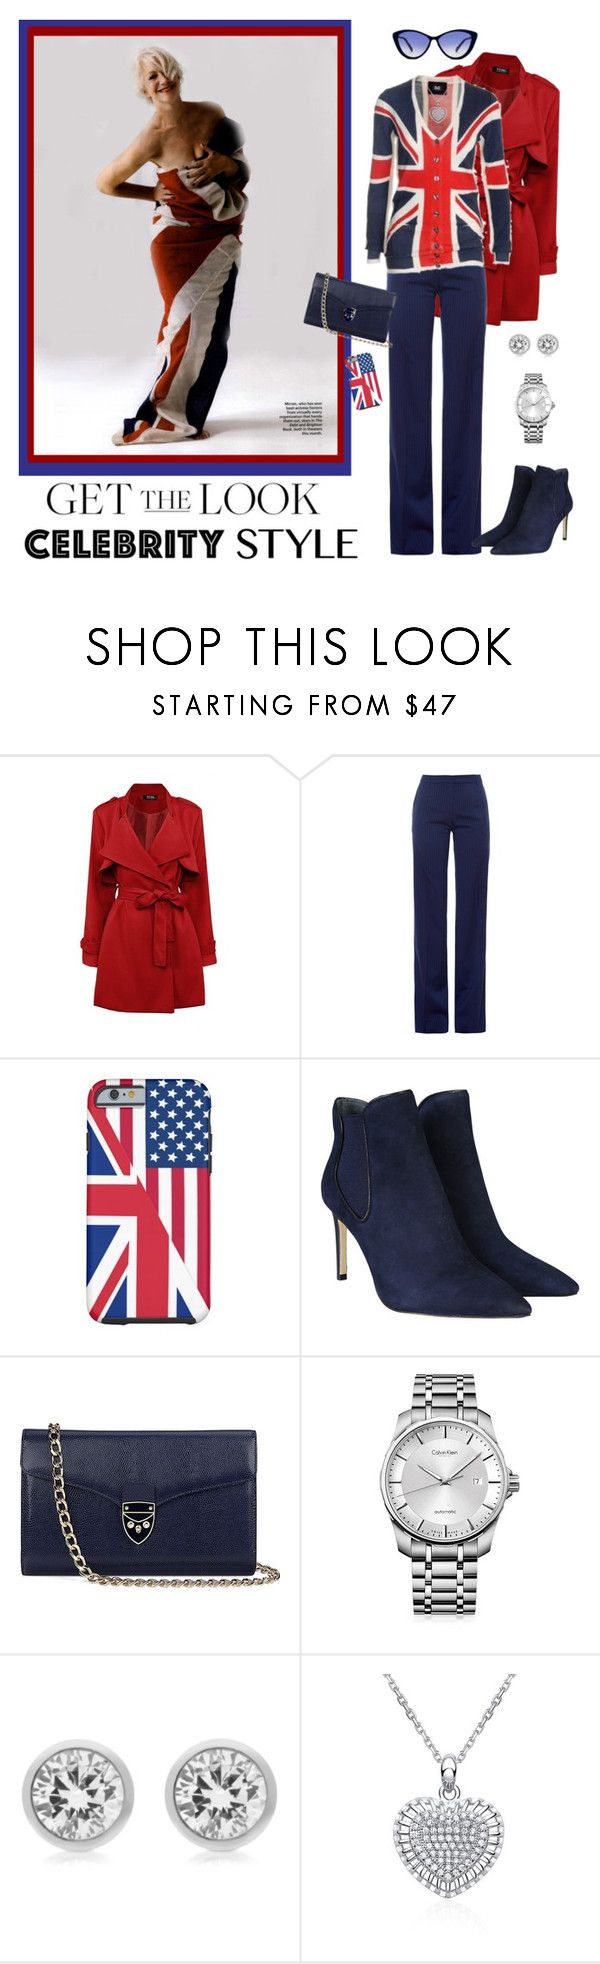 """""""Dame Helen Mirren"""" by krusie ❤ liked on Polyvore featuring Altuzarra, Tory Burch, Aspinal of London, Calvin Klein, Michael Kors, Italia Independent, women's clothing, women's fashion, women and female"""